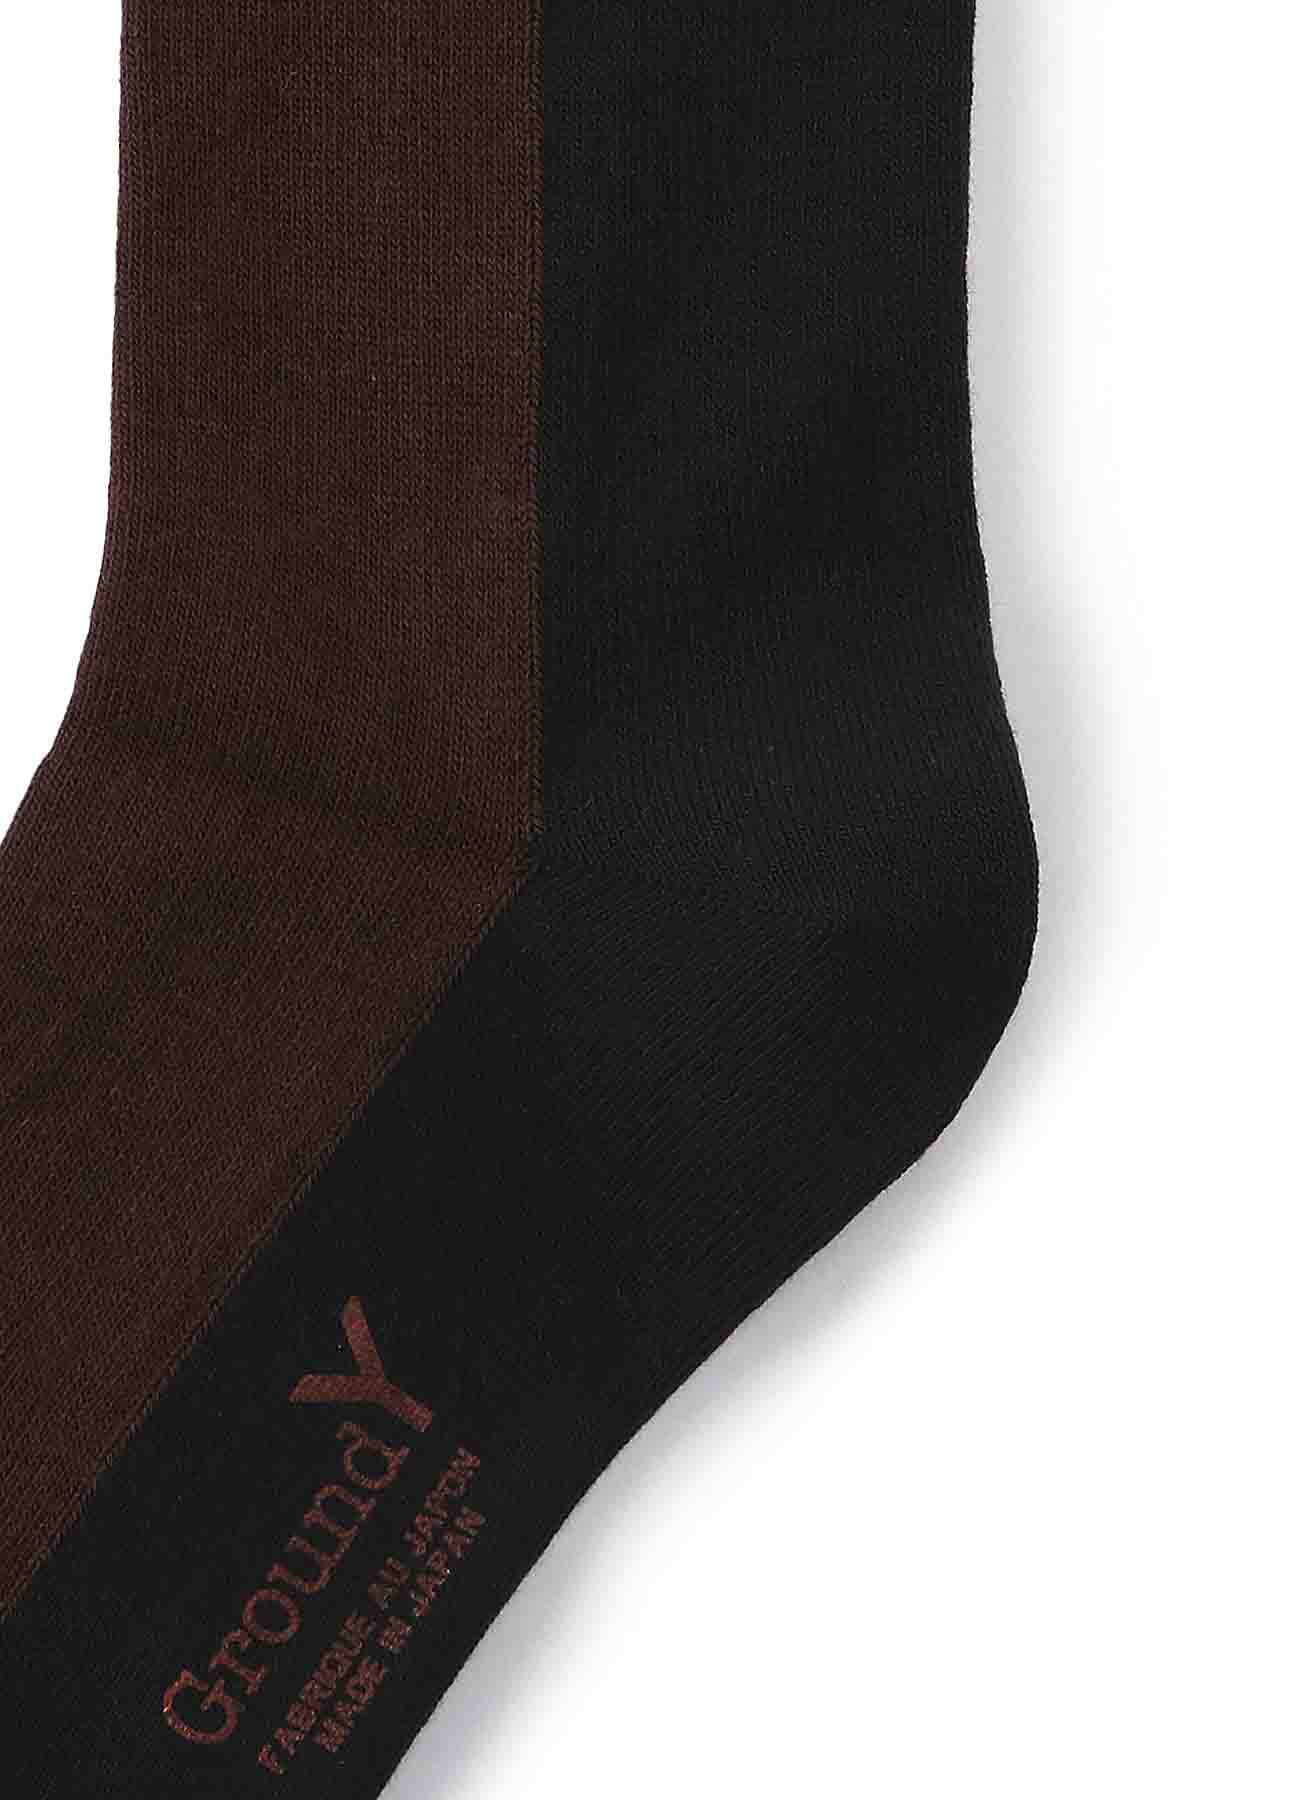 Front and Back Two Color Socks